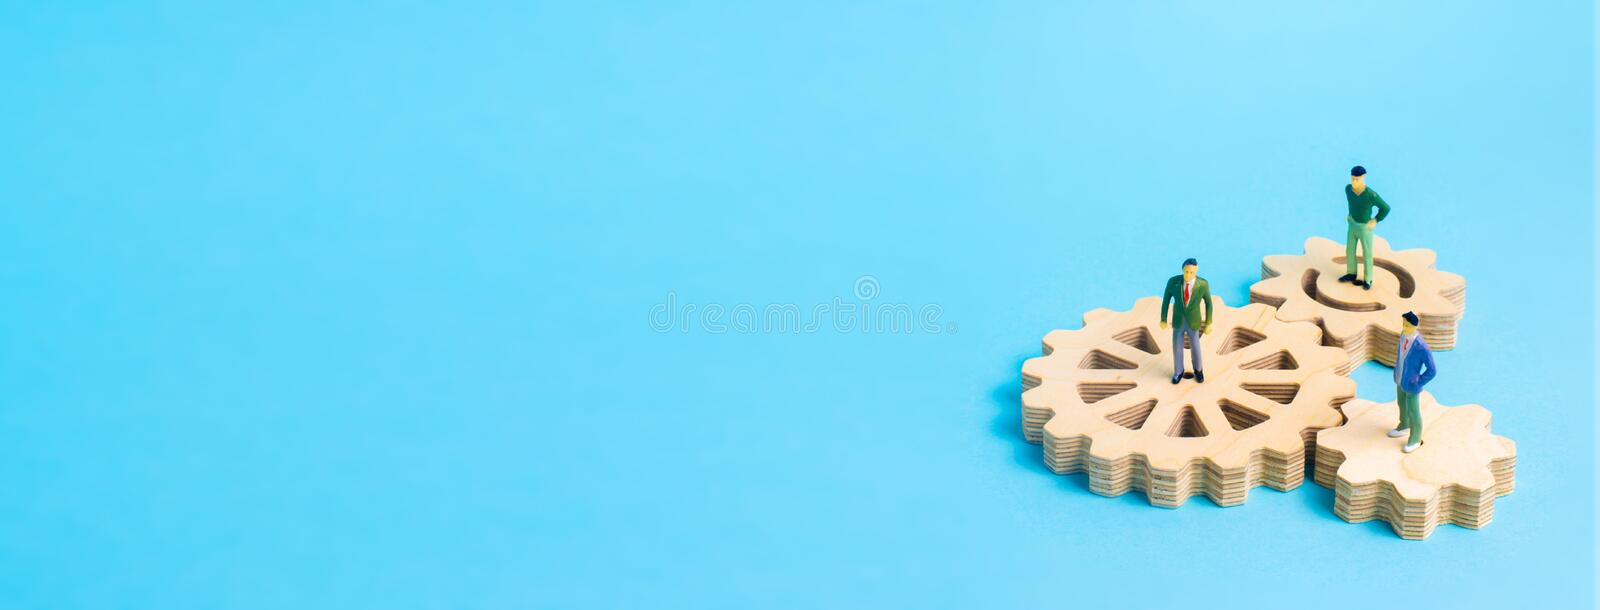 Wooden gear on a white background. Abstract background for presentations and banners. The concept of technology and industry. The think process. Part of a royalty free stock photos